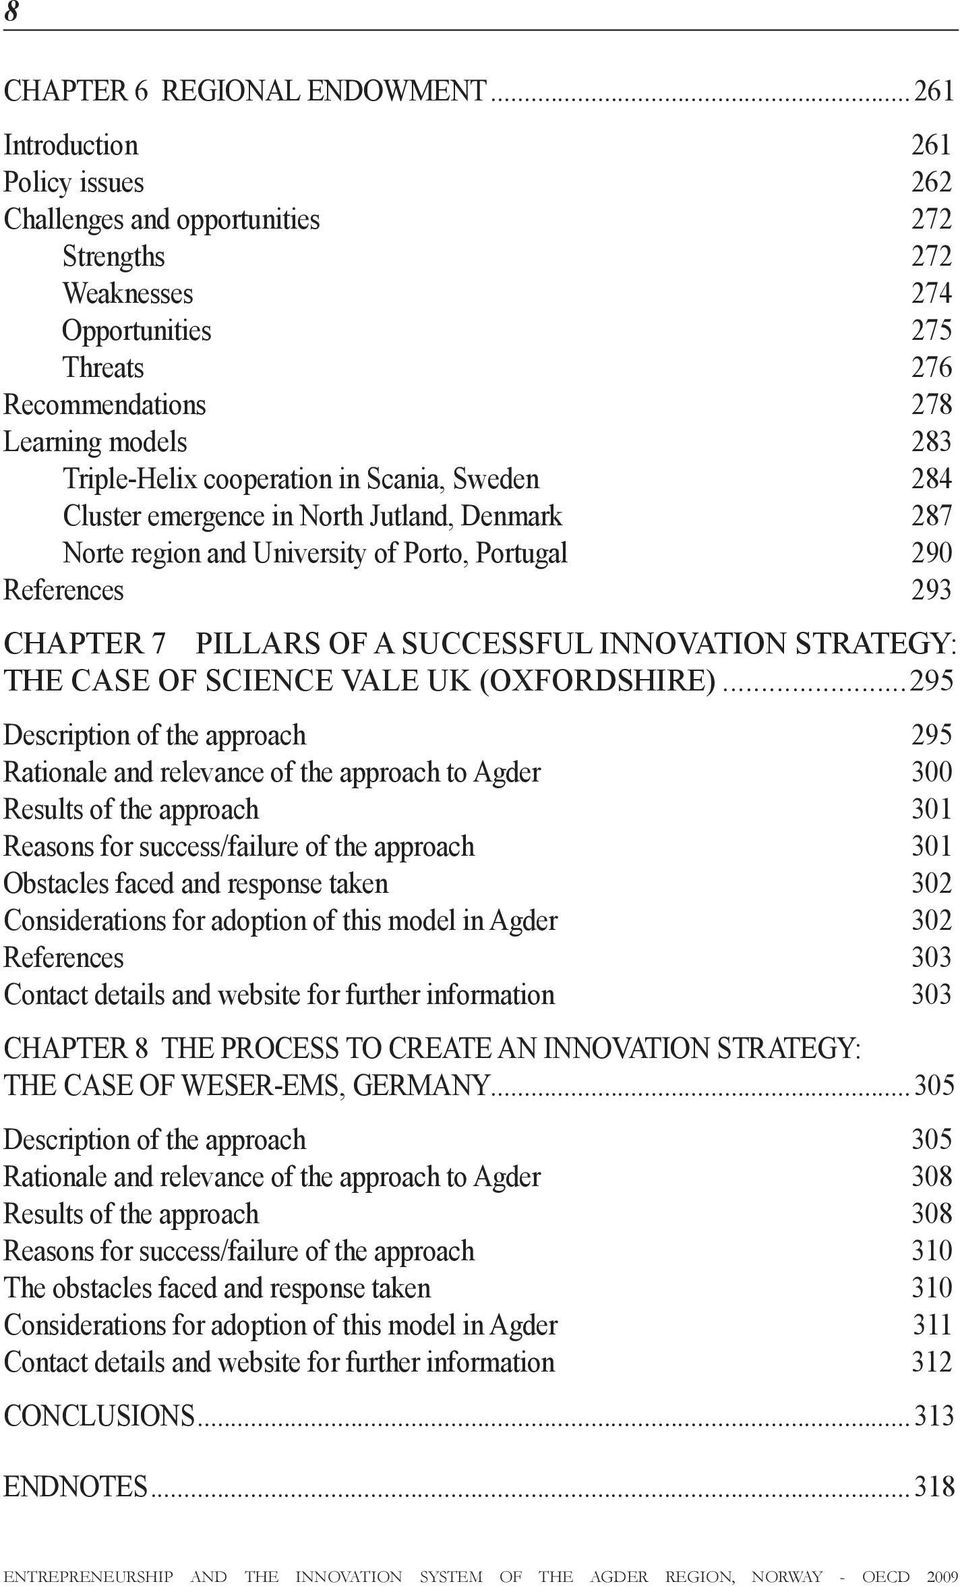 Scania, Sweden 284 Cluster emergence in North Jutland, Denmark 287 Norte region and University of Porto, Portugal 290 References 293 CHAPTER 7 Pillars of a Successful Innovation Strategy: The case of